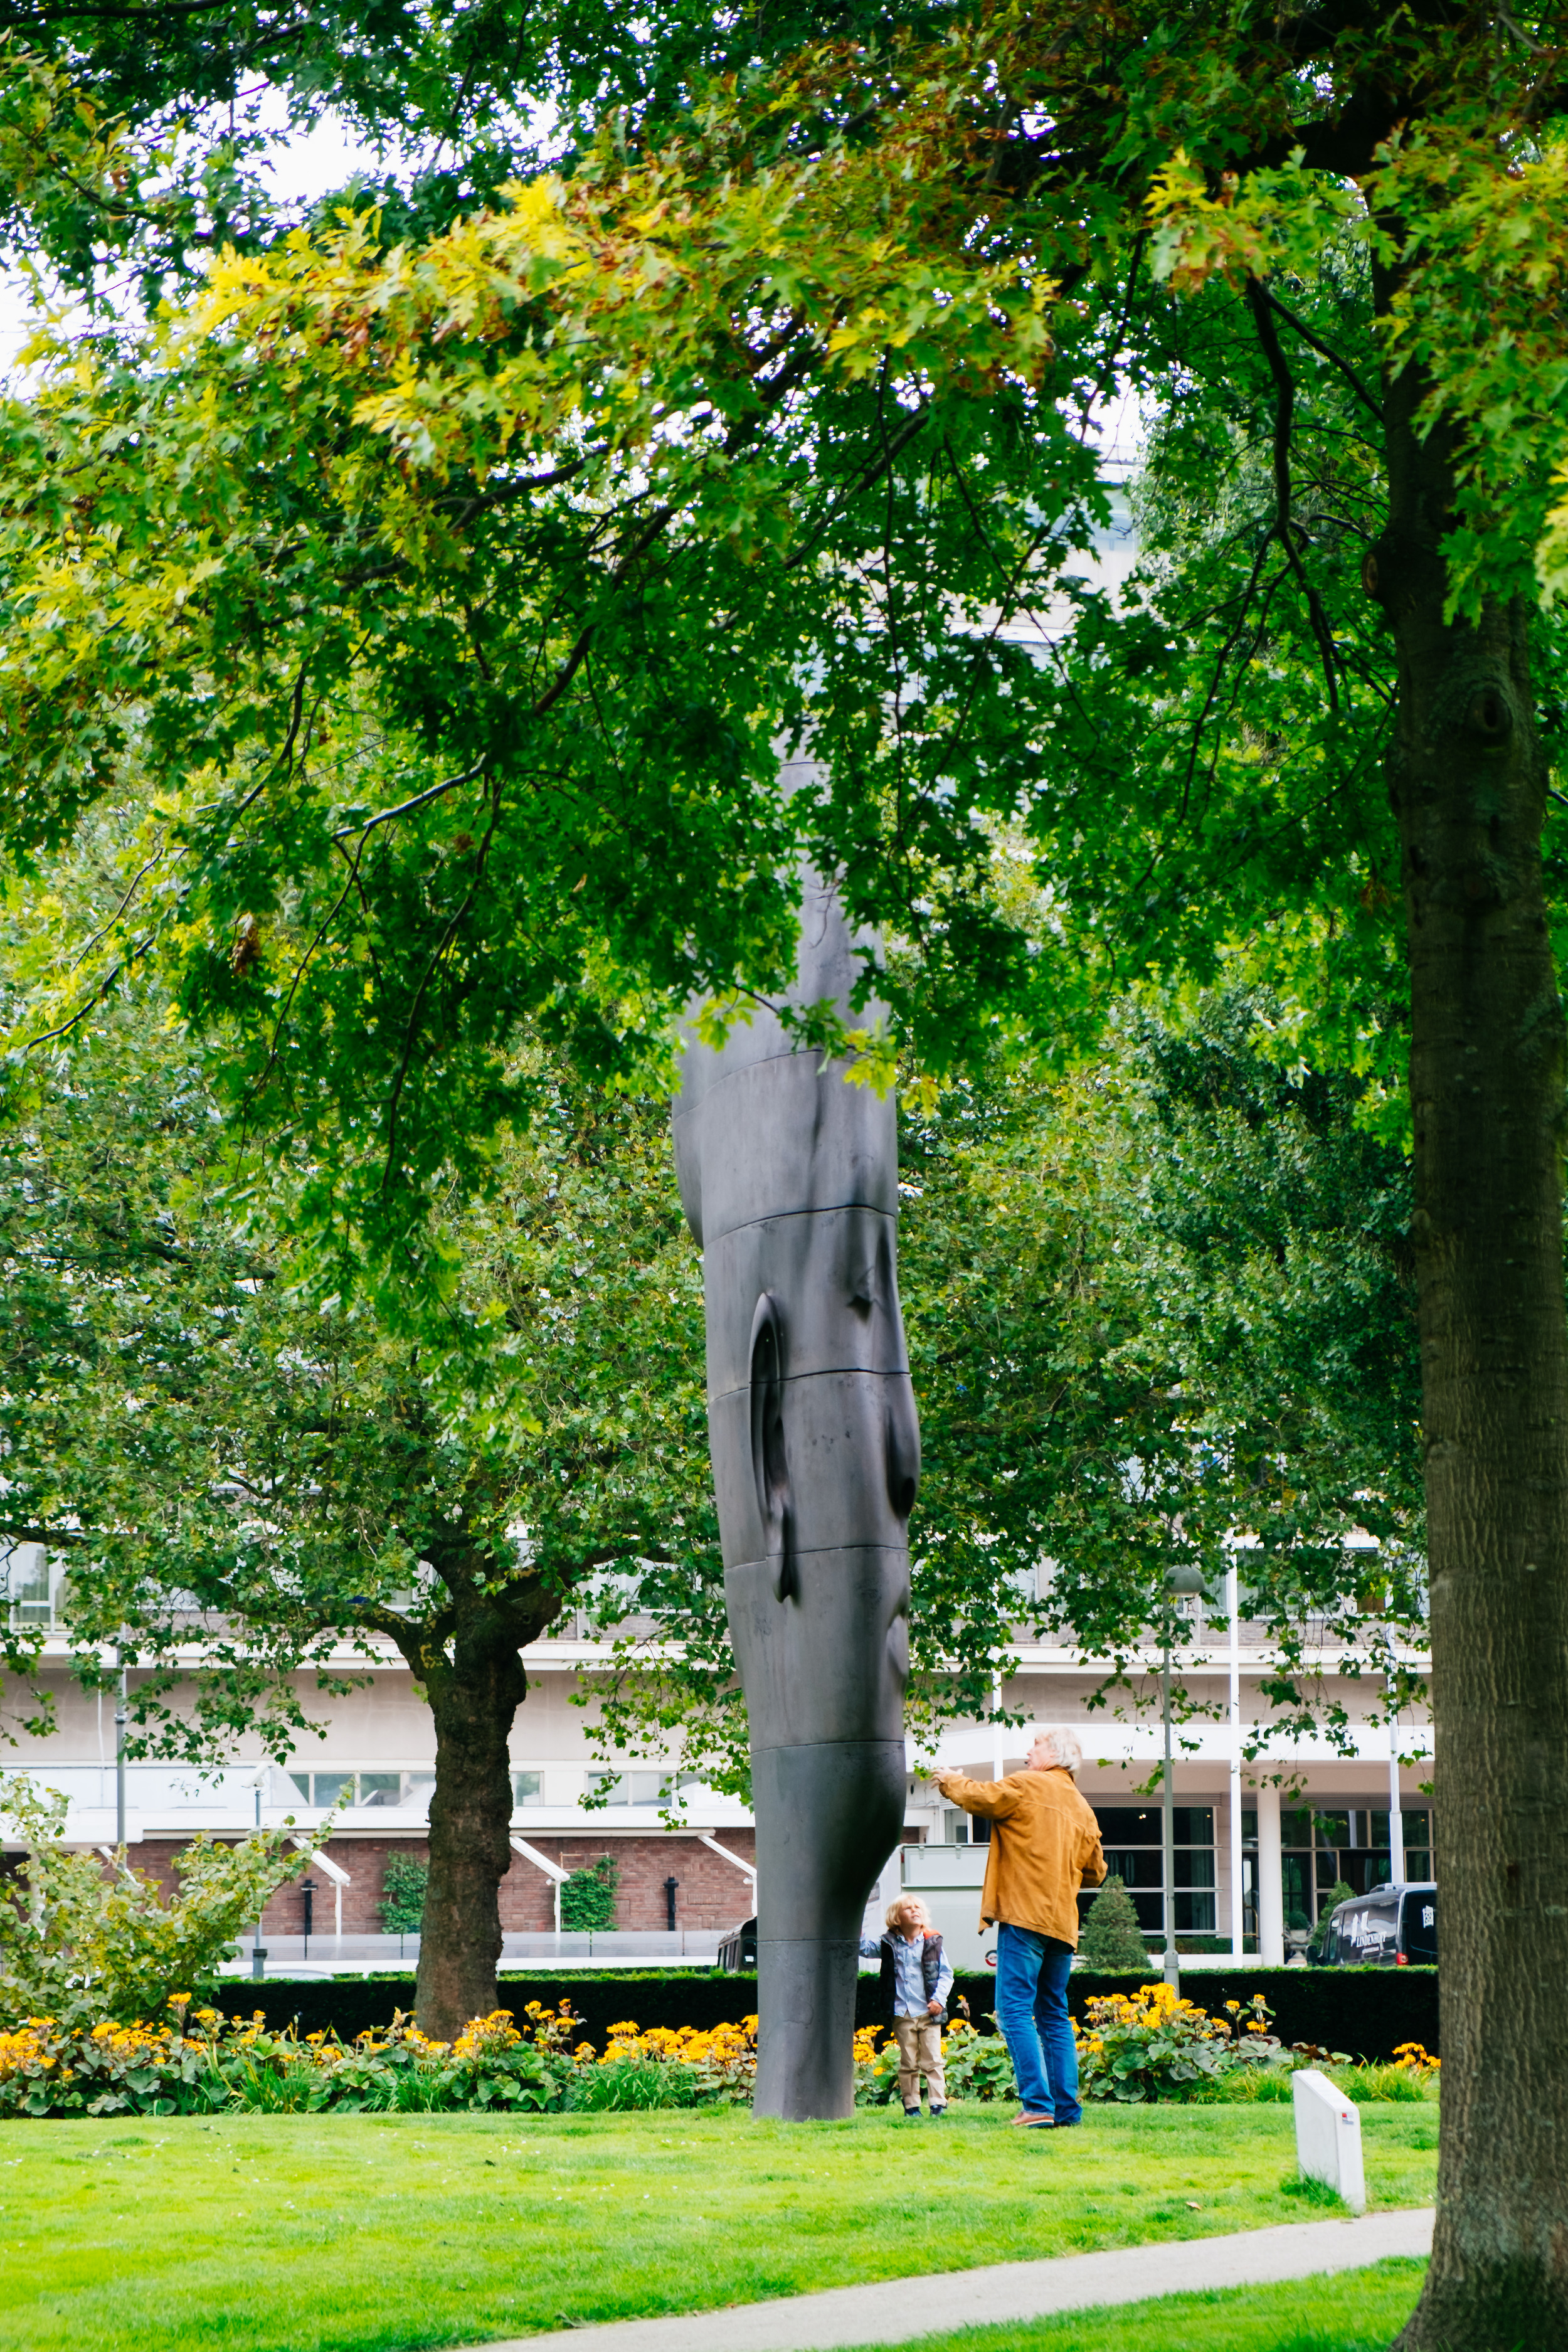 Jaume Plensa – Duna at ArtZuid